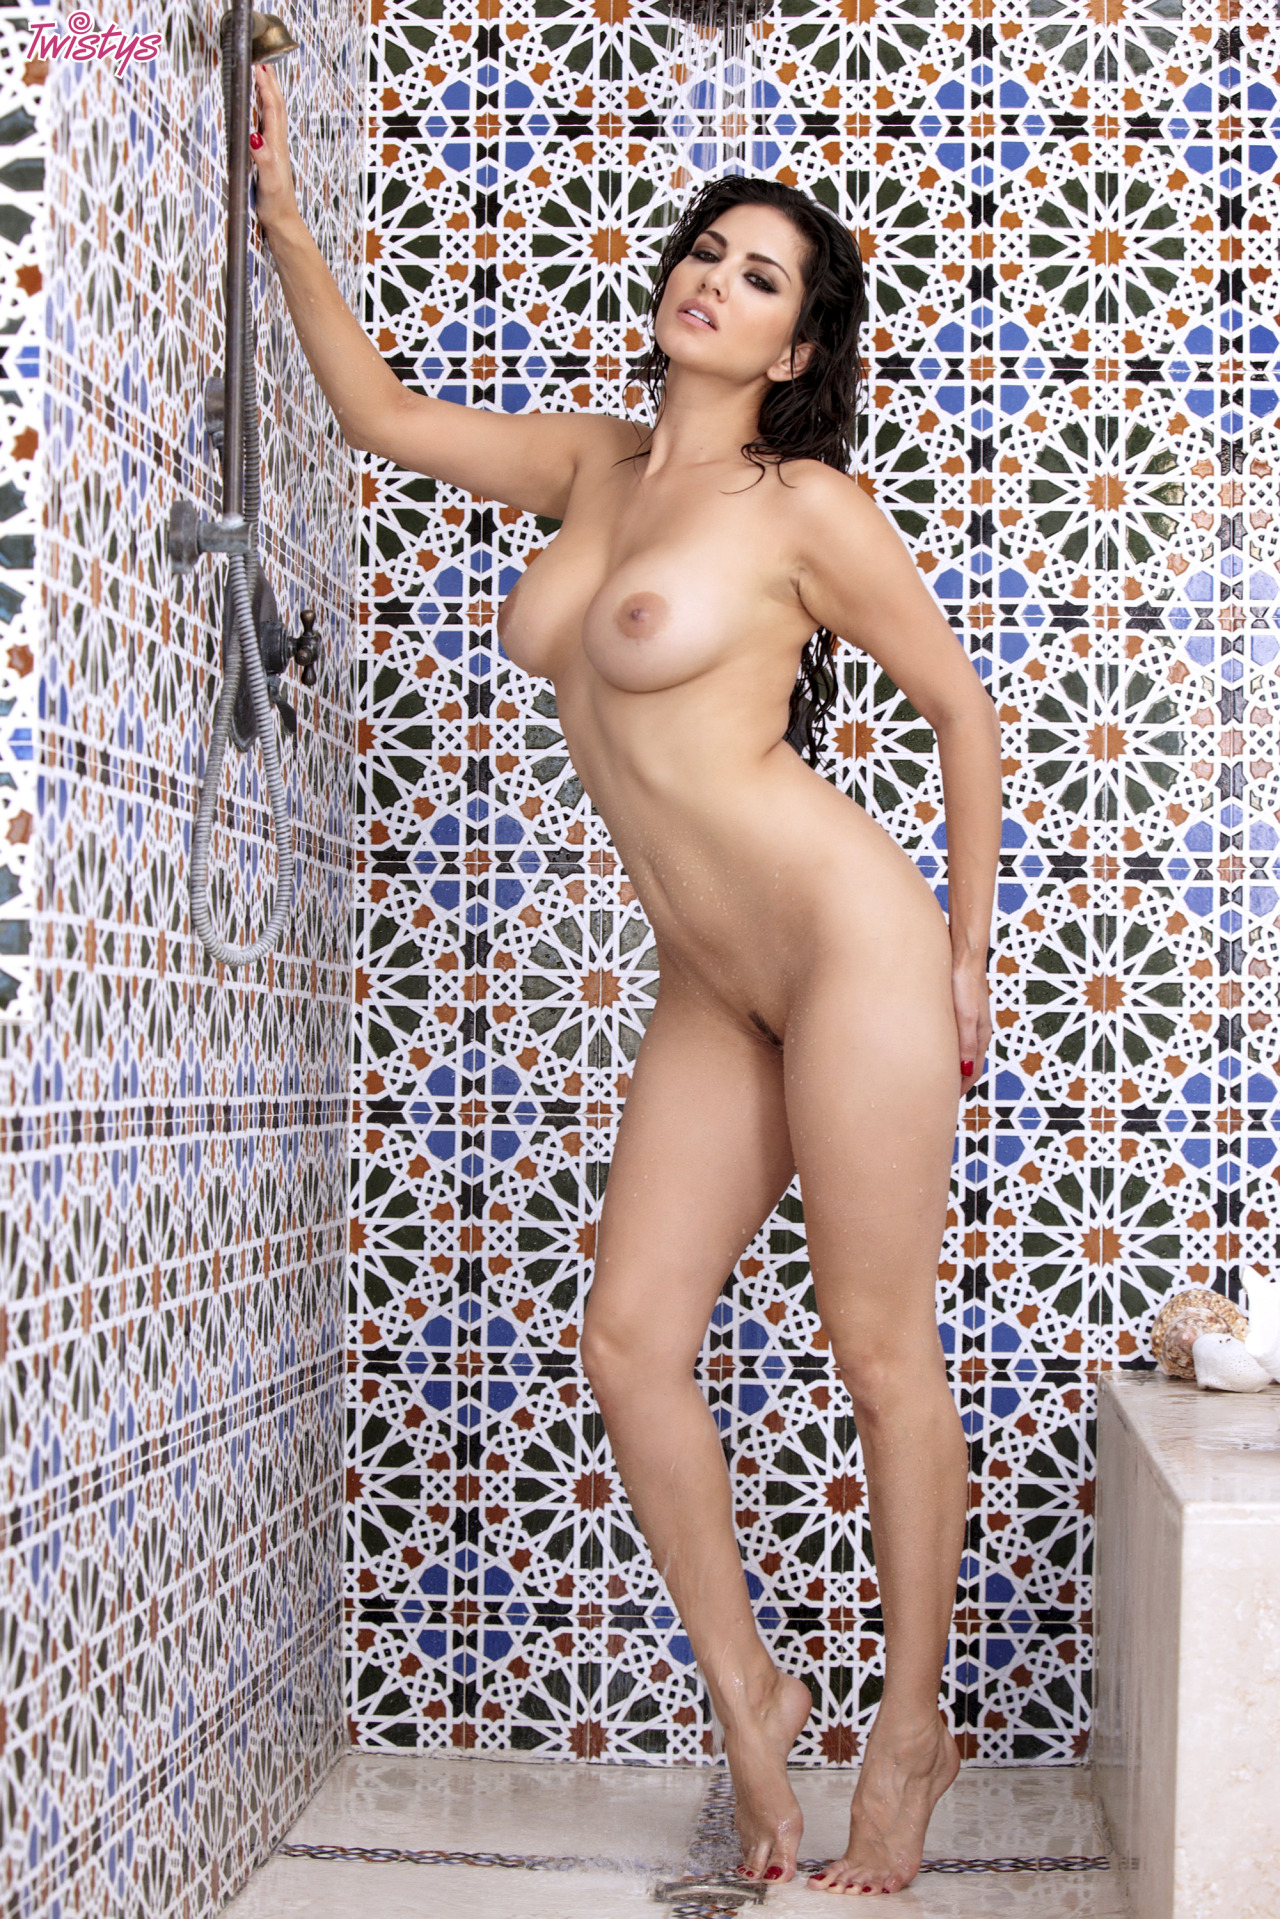 Sunny Leone Getting Wet N Wild In The Shower 1